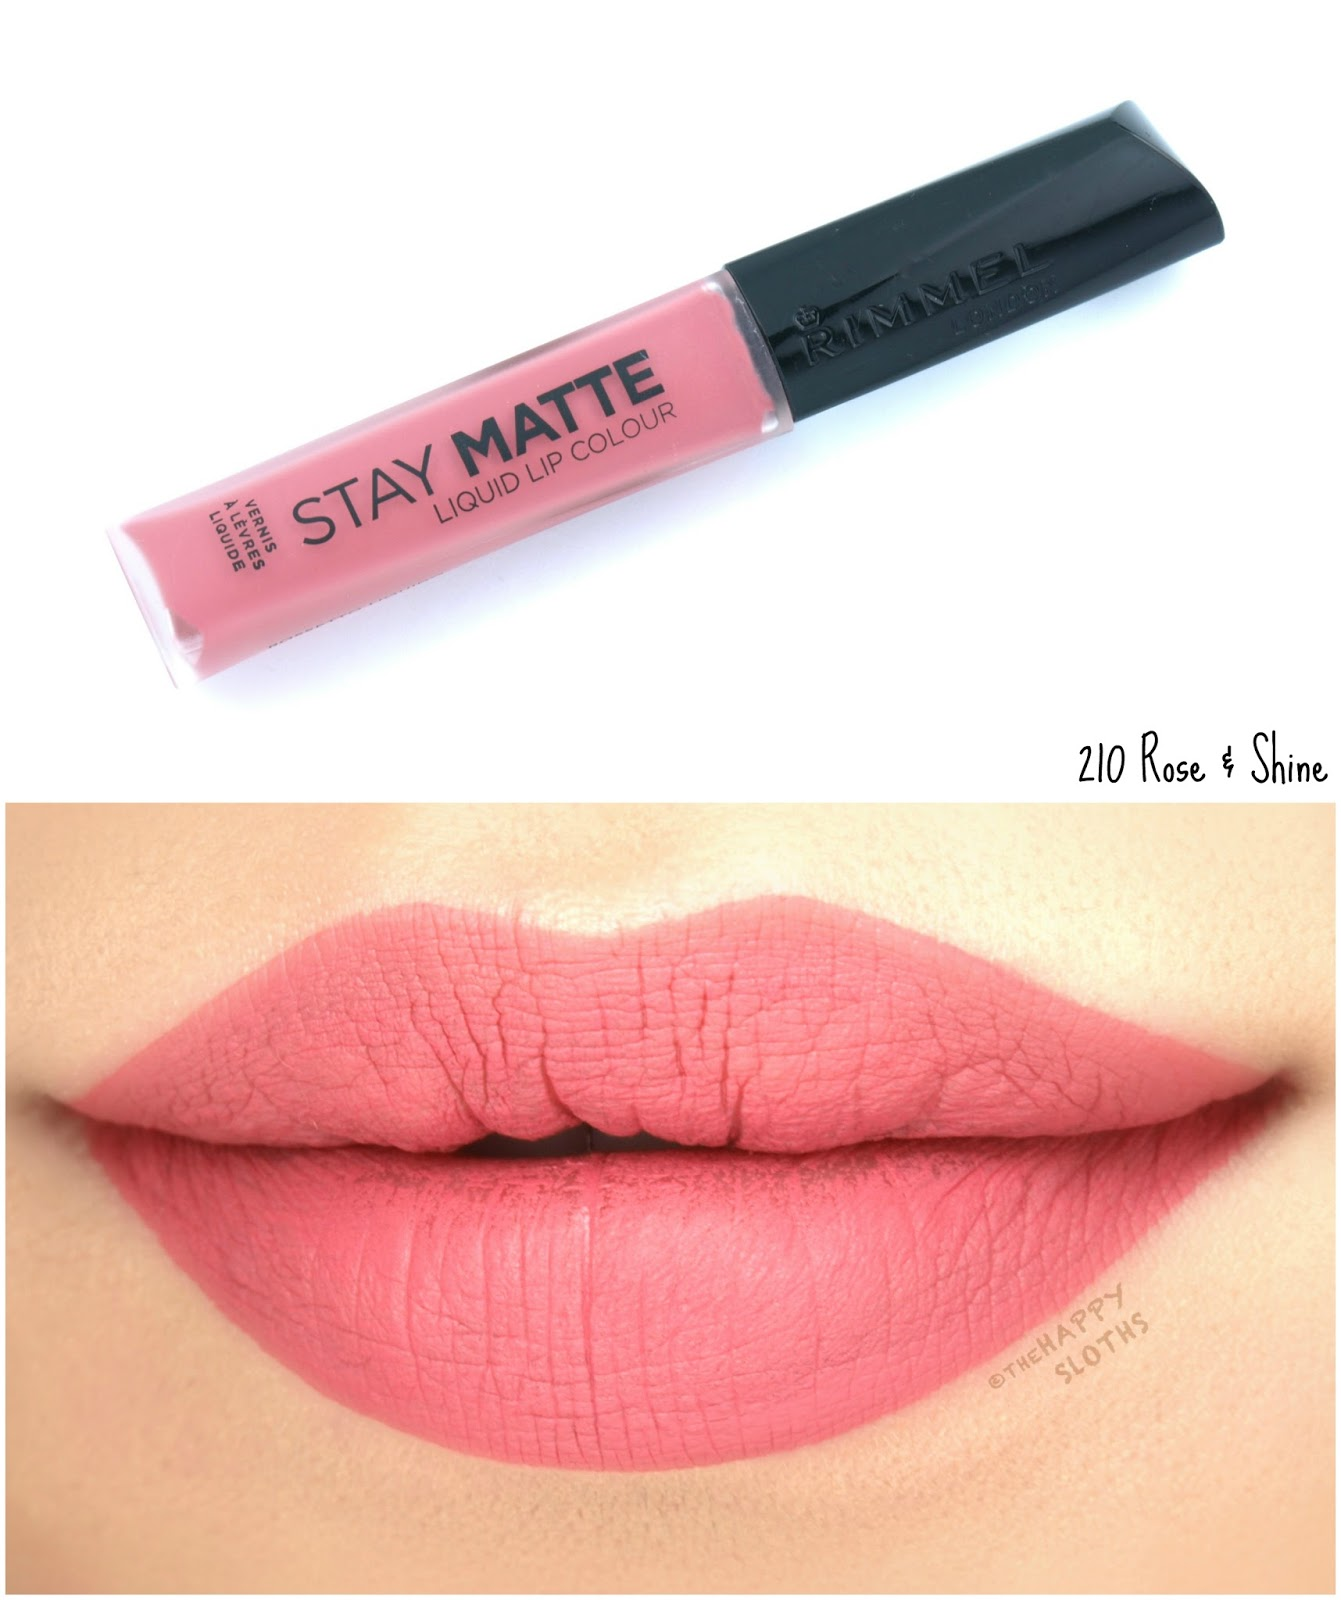 Rimmel London Stay Matte Liquid Lip Colour | 210 Rose & Shine: Review and Swatches